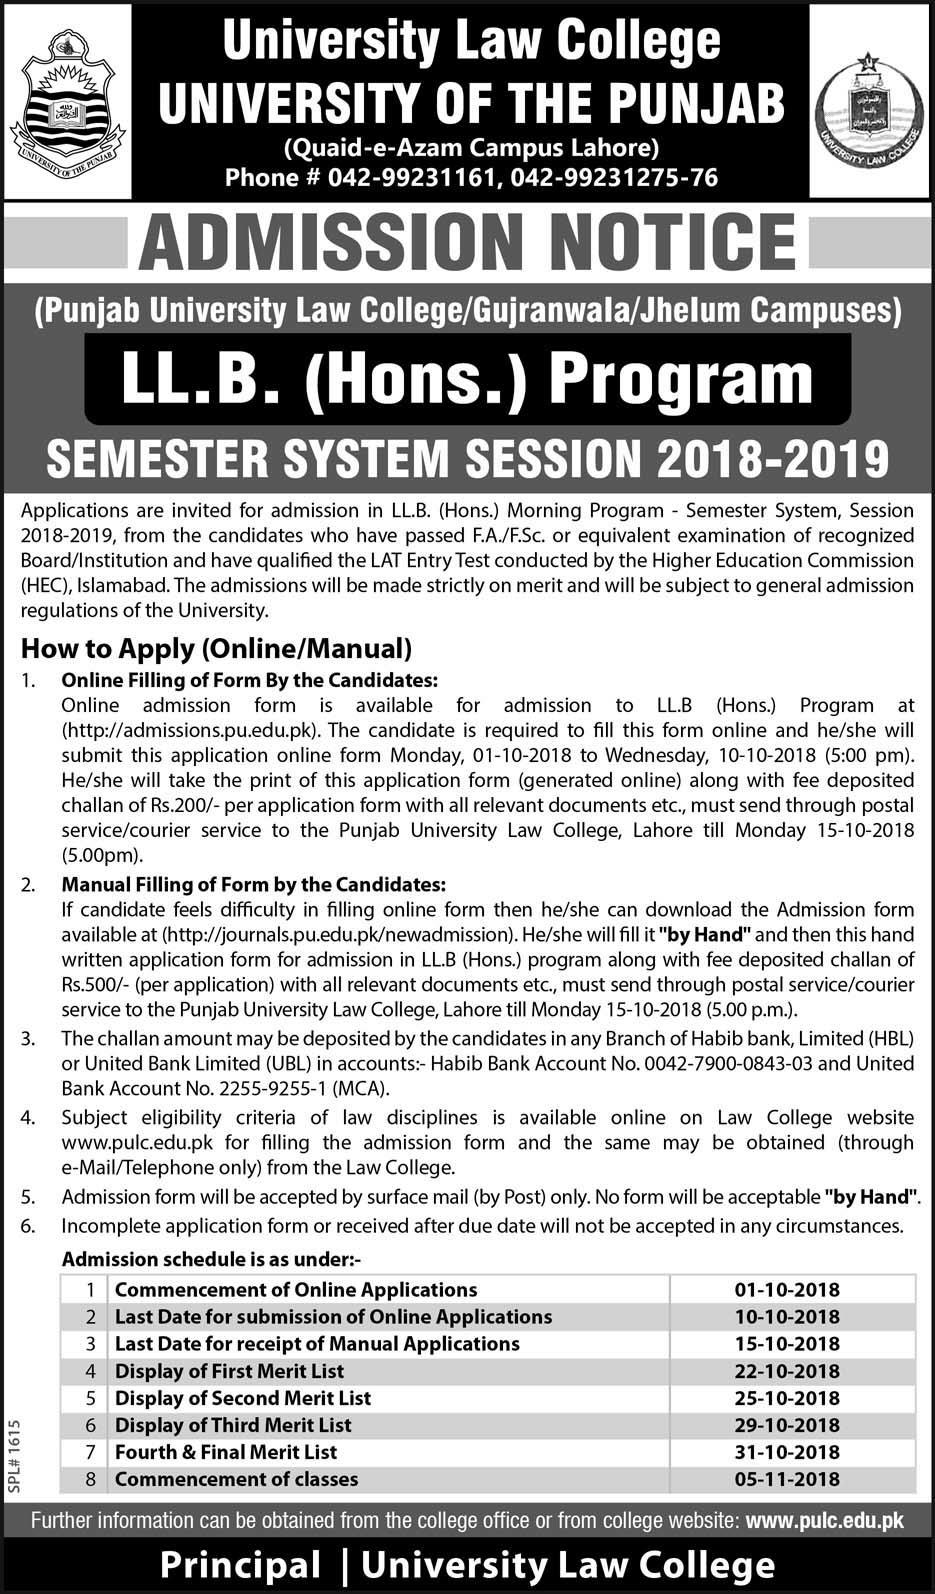 Punjab University Law College Lahore Admission 2018 PULC Online Application Form, Last Date, and Eligibility Criteria